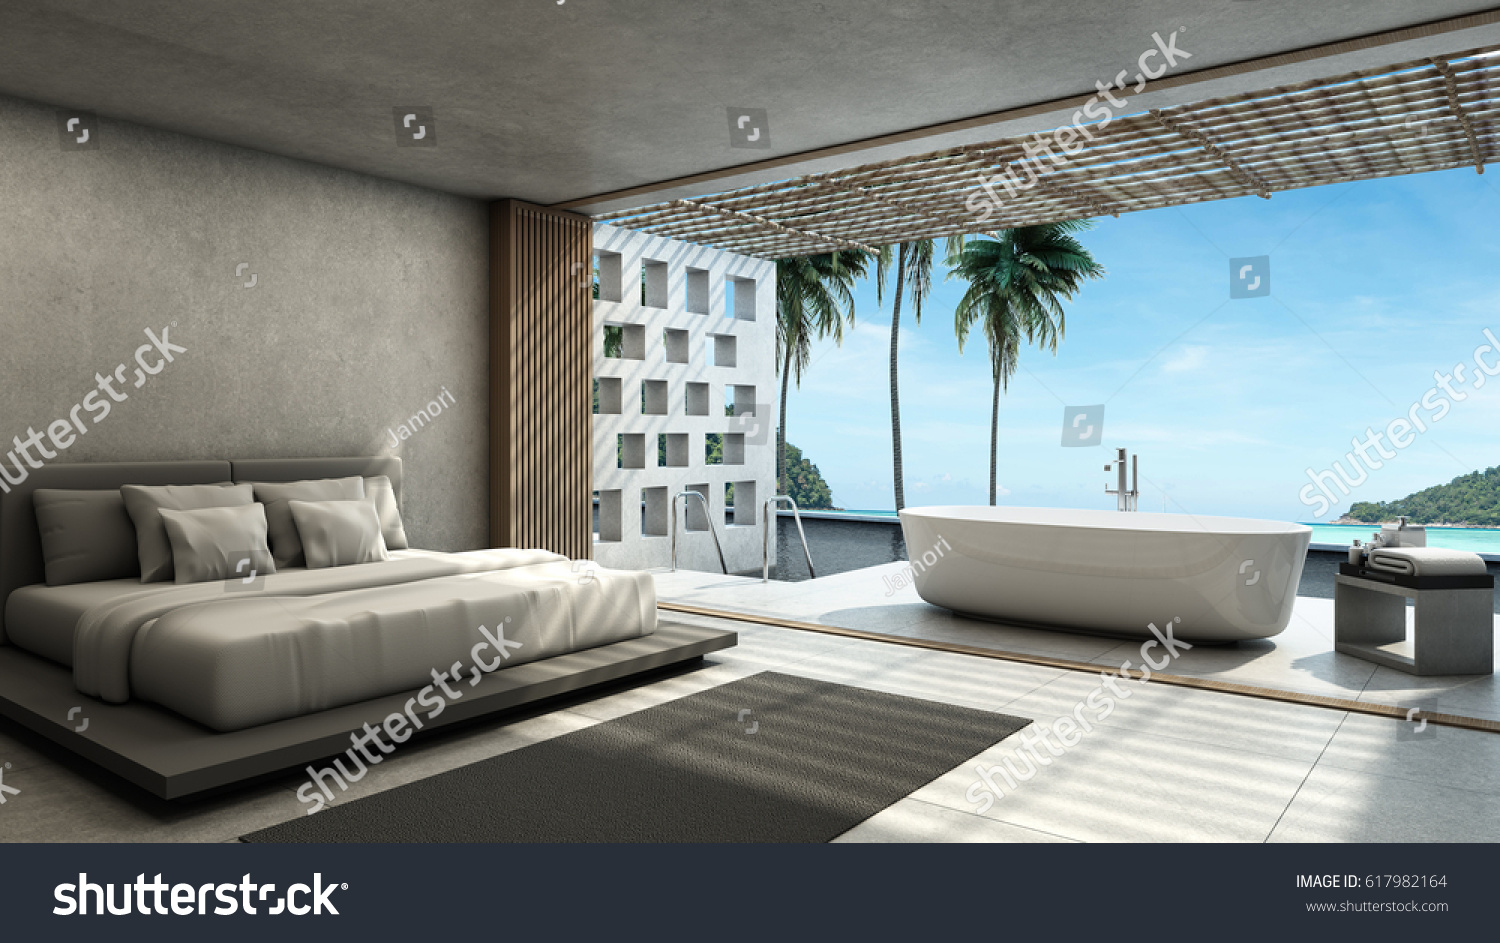 Bedroom Pool Villa Outdoor Bathroom Way Stock Illustration - Royalty on outdoor electrical box covers, outdoor kitchen with bathroom, outdoor shed with bathroom, concrete bathrooms for pools, outdoor toilet designs, outdoor breaker box weather-tight, outdoor swimming pools, outdoor cowboy bathroom, unique swimming pools, outdoor rustic bathroom ideas, outdoor pool bathroom ideas, outdoor pool cabinet, outdoor pool accessories, outdoor bath, outdoor style bathroom, outdoor bathroom kits, outdoor bathroom designs, outdoor kitchen pool gazebos, outdoor kitchen attached to house, bathrooms with pools,